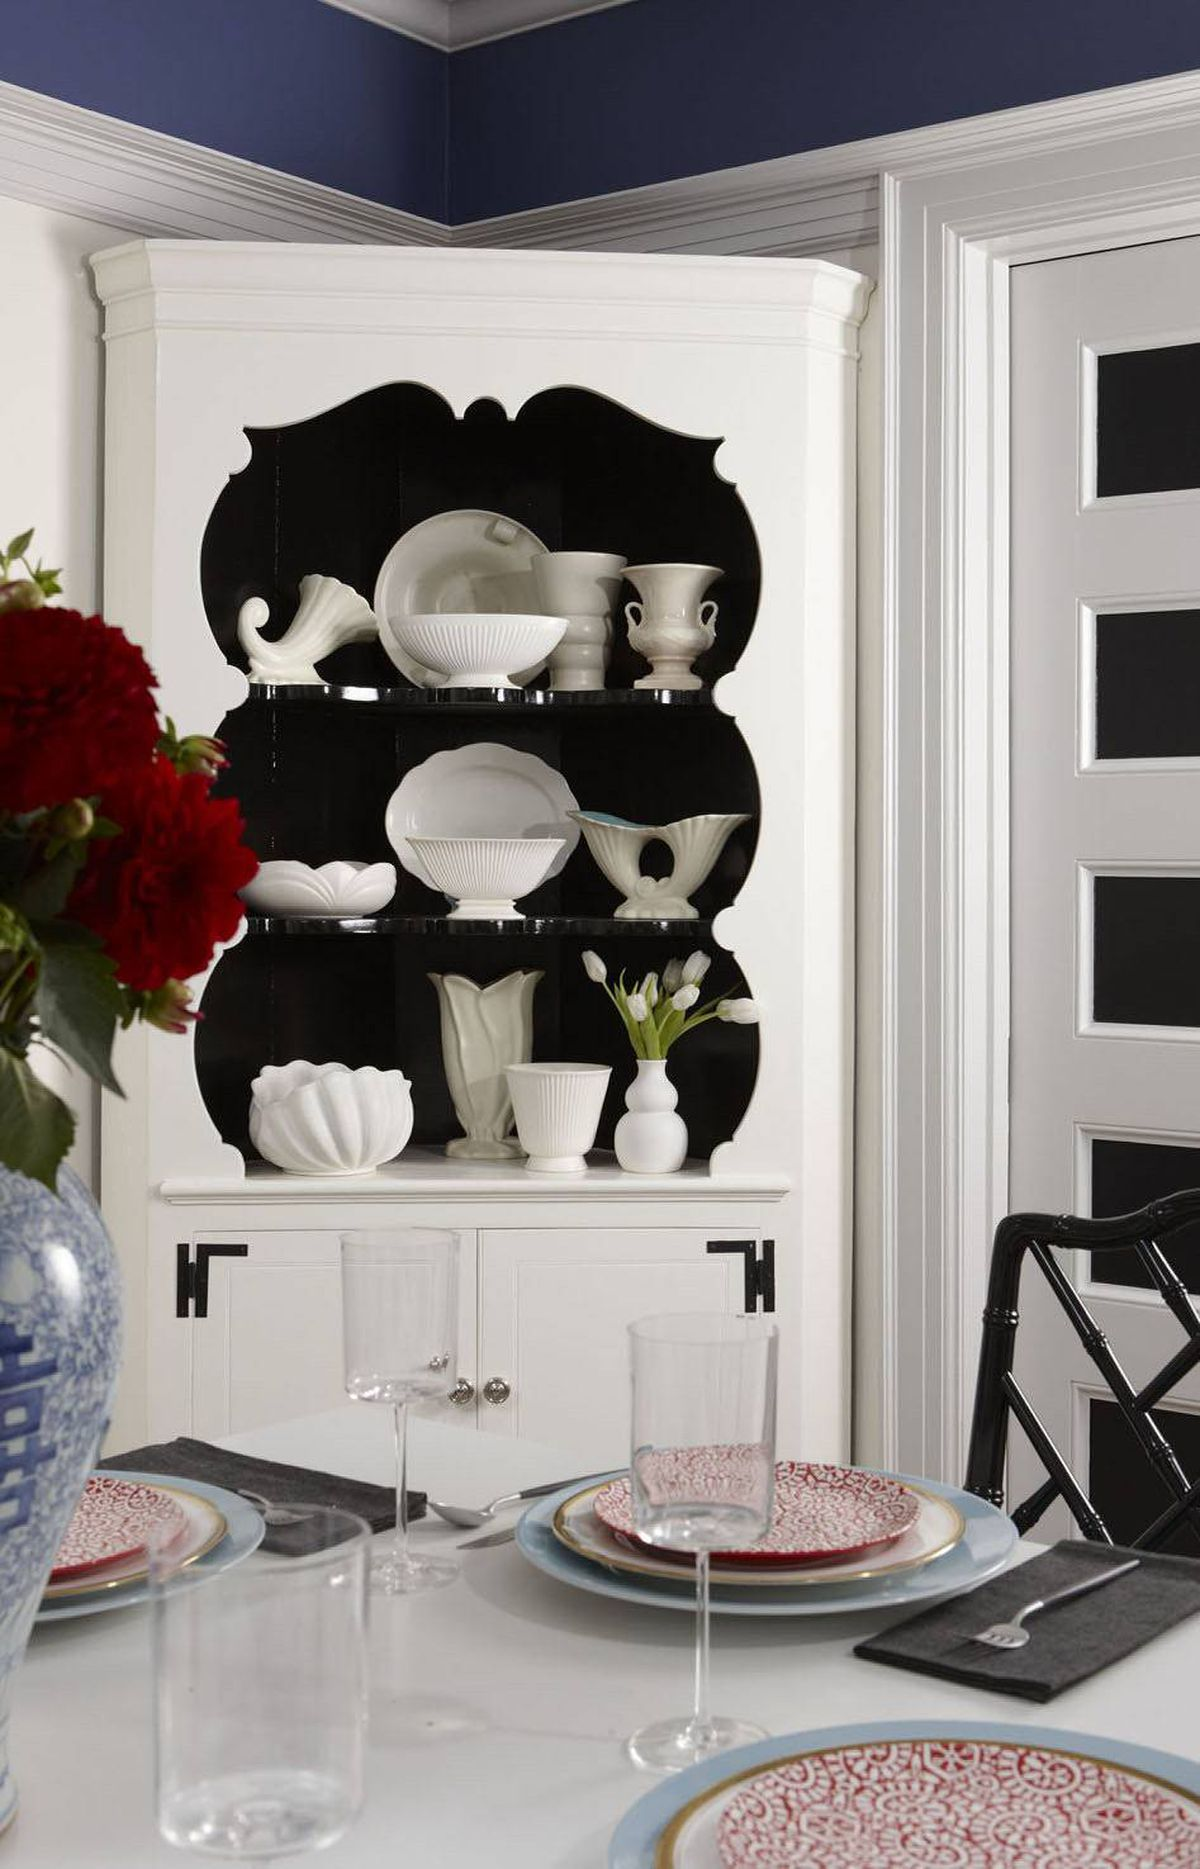 TAKE A BREAK FROM BROWN In this room, repainting wood chairs and a sideboard in glossy black injects tension into the space, provides a contrast to the light walls and table and ties in the painted details on the windows and doors. Crisp black and white always looks right!